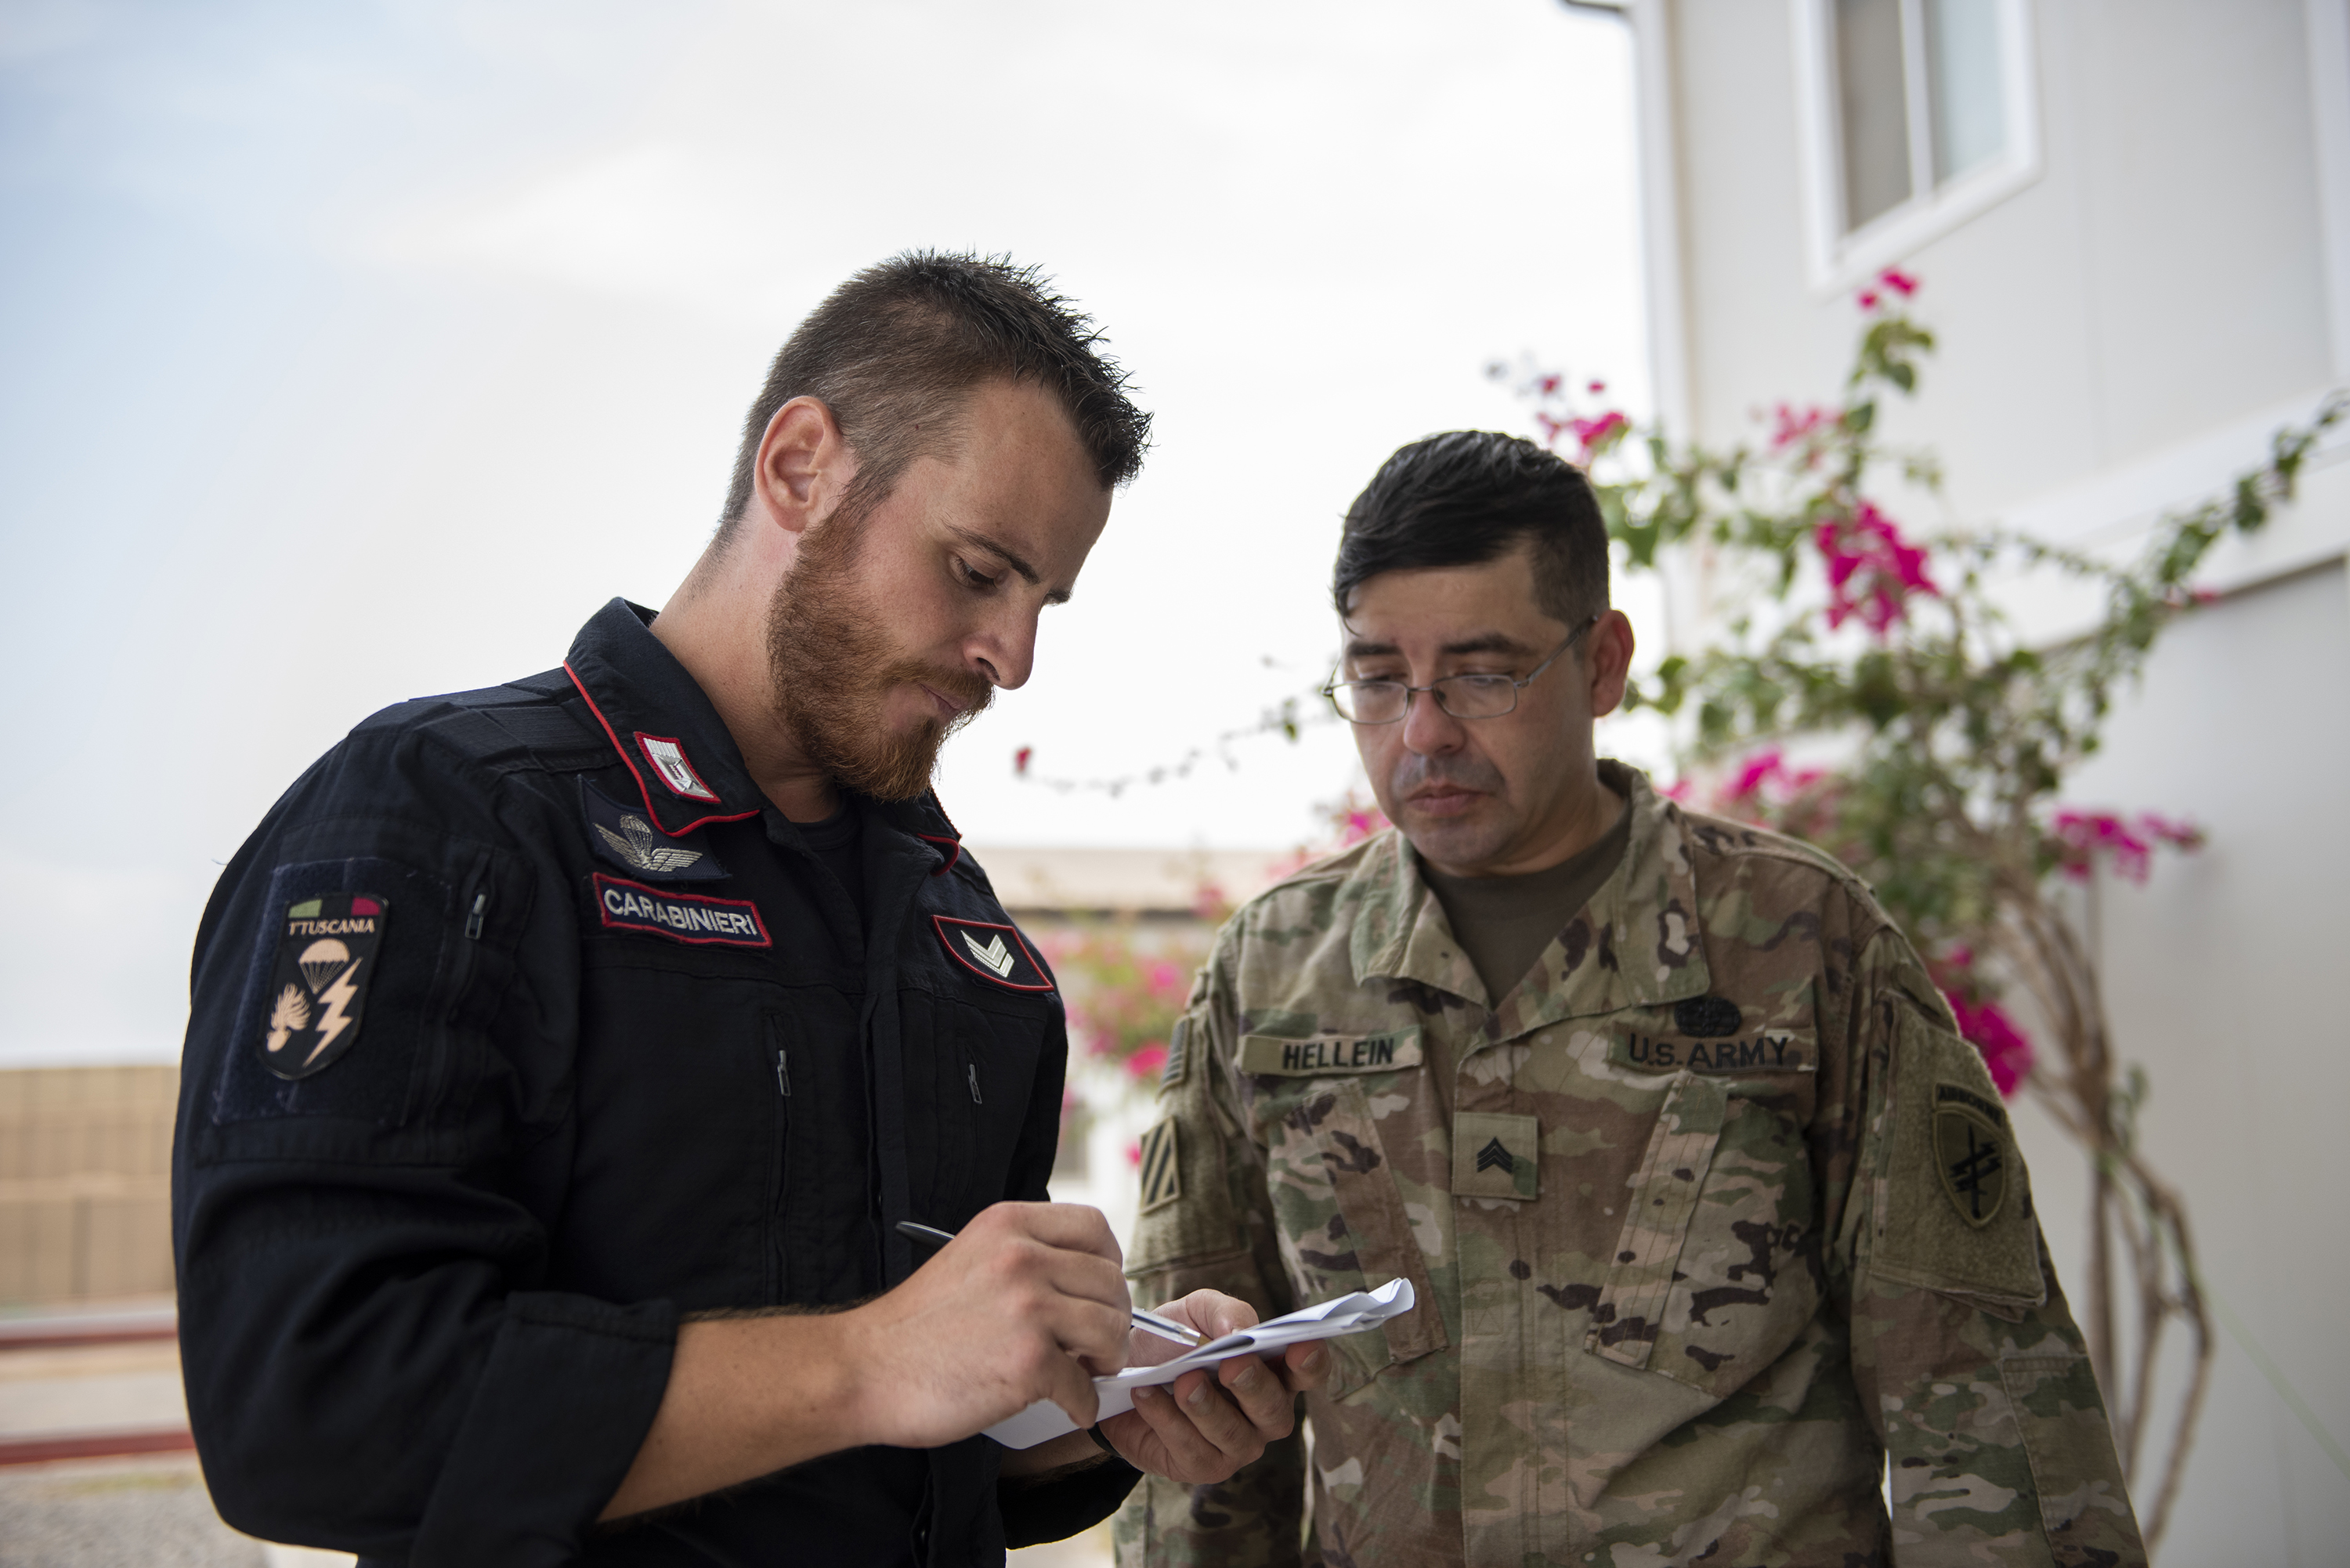 U.S. Army Sgt. Richard Hellein, a combat medic with the 404th Civil Affairs Battalion Functional Specialty Team, observes as Italian Vice-brigadiere Dennis Xamin, a carabinieri with the 1st Paratroopers Carabinieri Regiment, Tuscania, reviews the steps of calling in a nine-line medical evacuation request during a Combat Lifesaver Course on Base Militar Italiano de Supporte, Djibouti, April 28, 2018. The medics were overseeing the combat lifesaver lanes, which are the final task for the students prior to completion of the course. (U.S. Air National Guard photo by Master Sgt. Sarah Mattison)